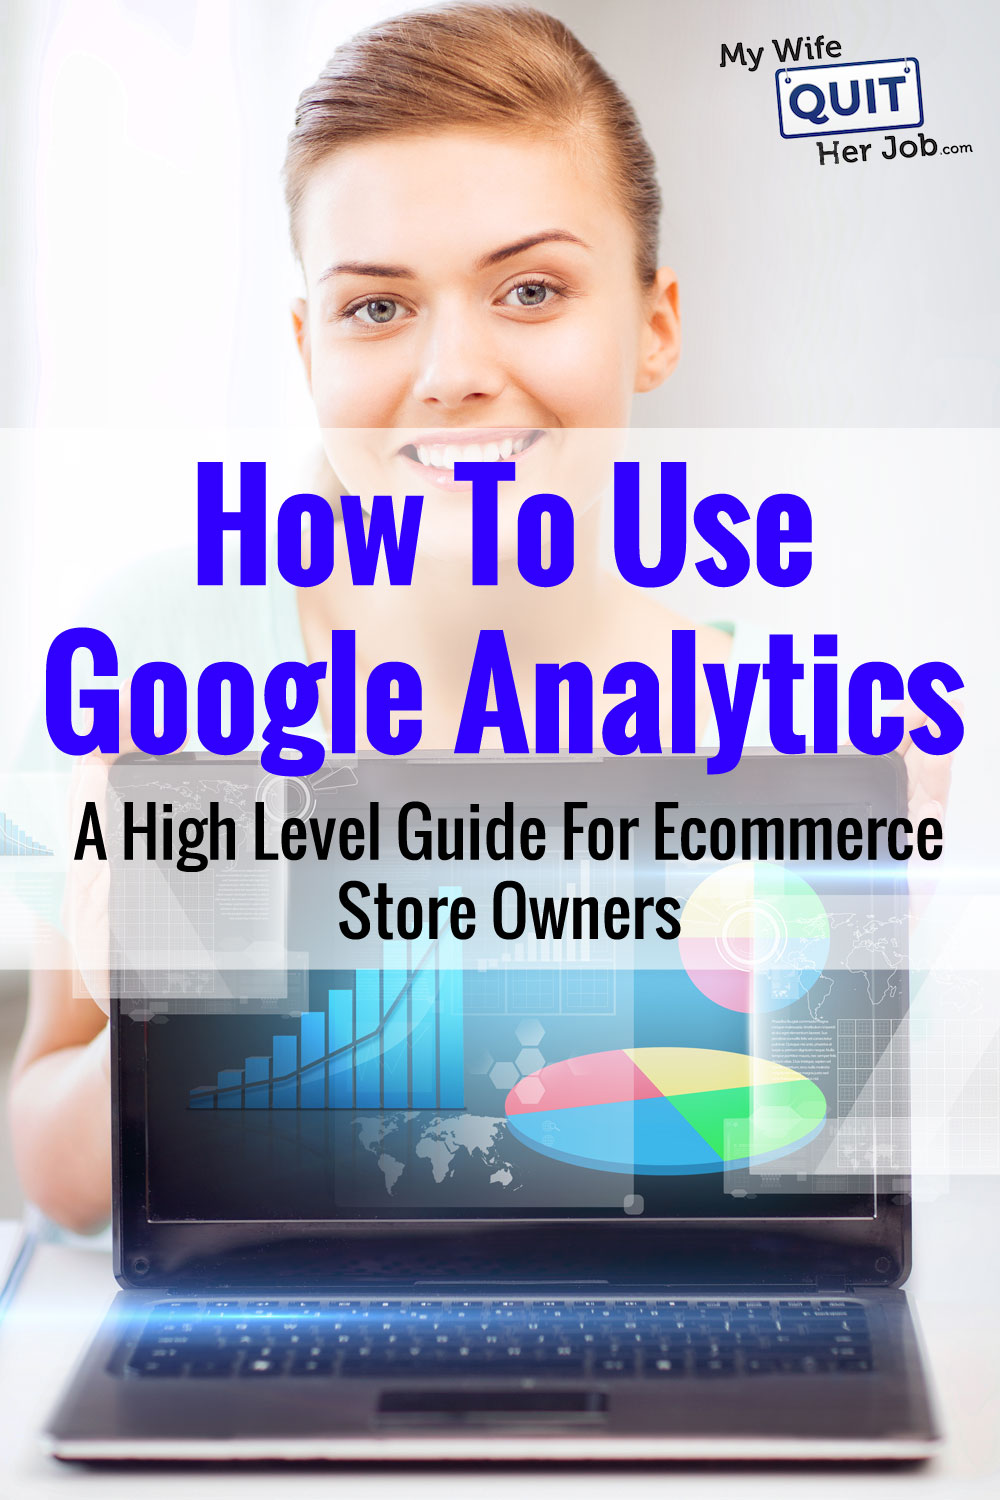 How To Use Google Analytics - A High Level Guide For Ecommerce Store Owners